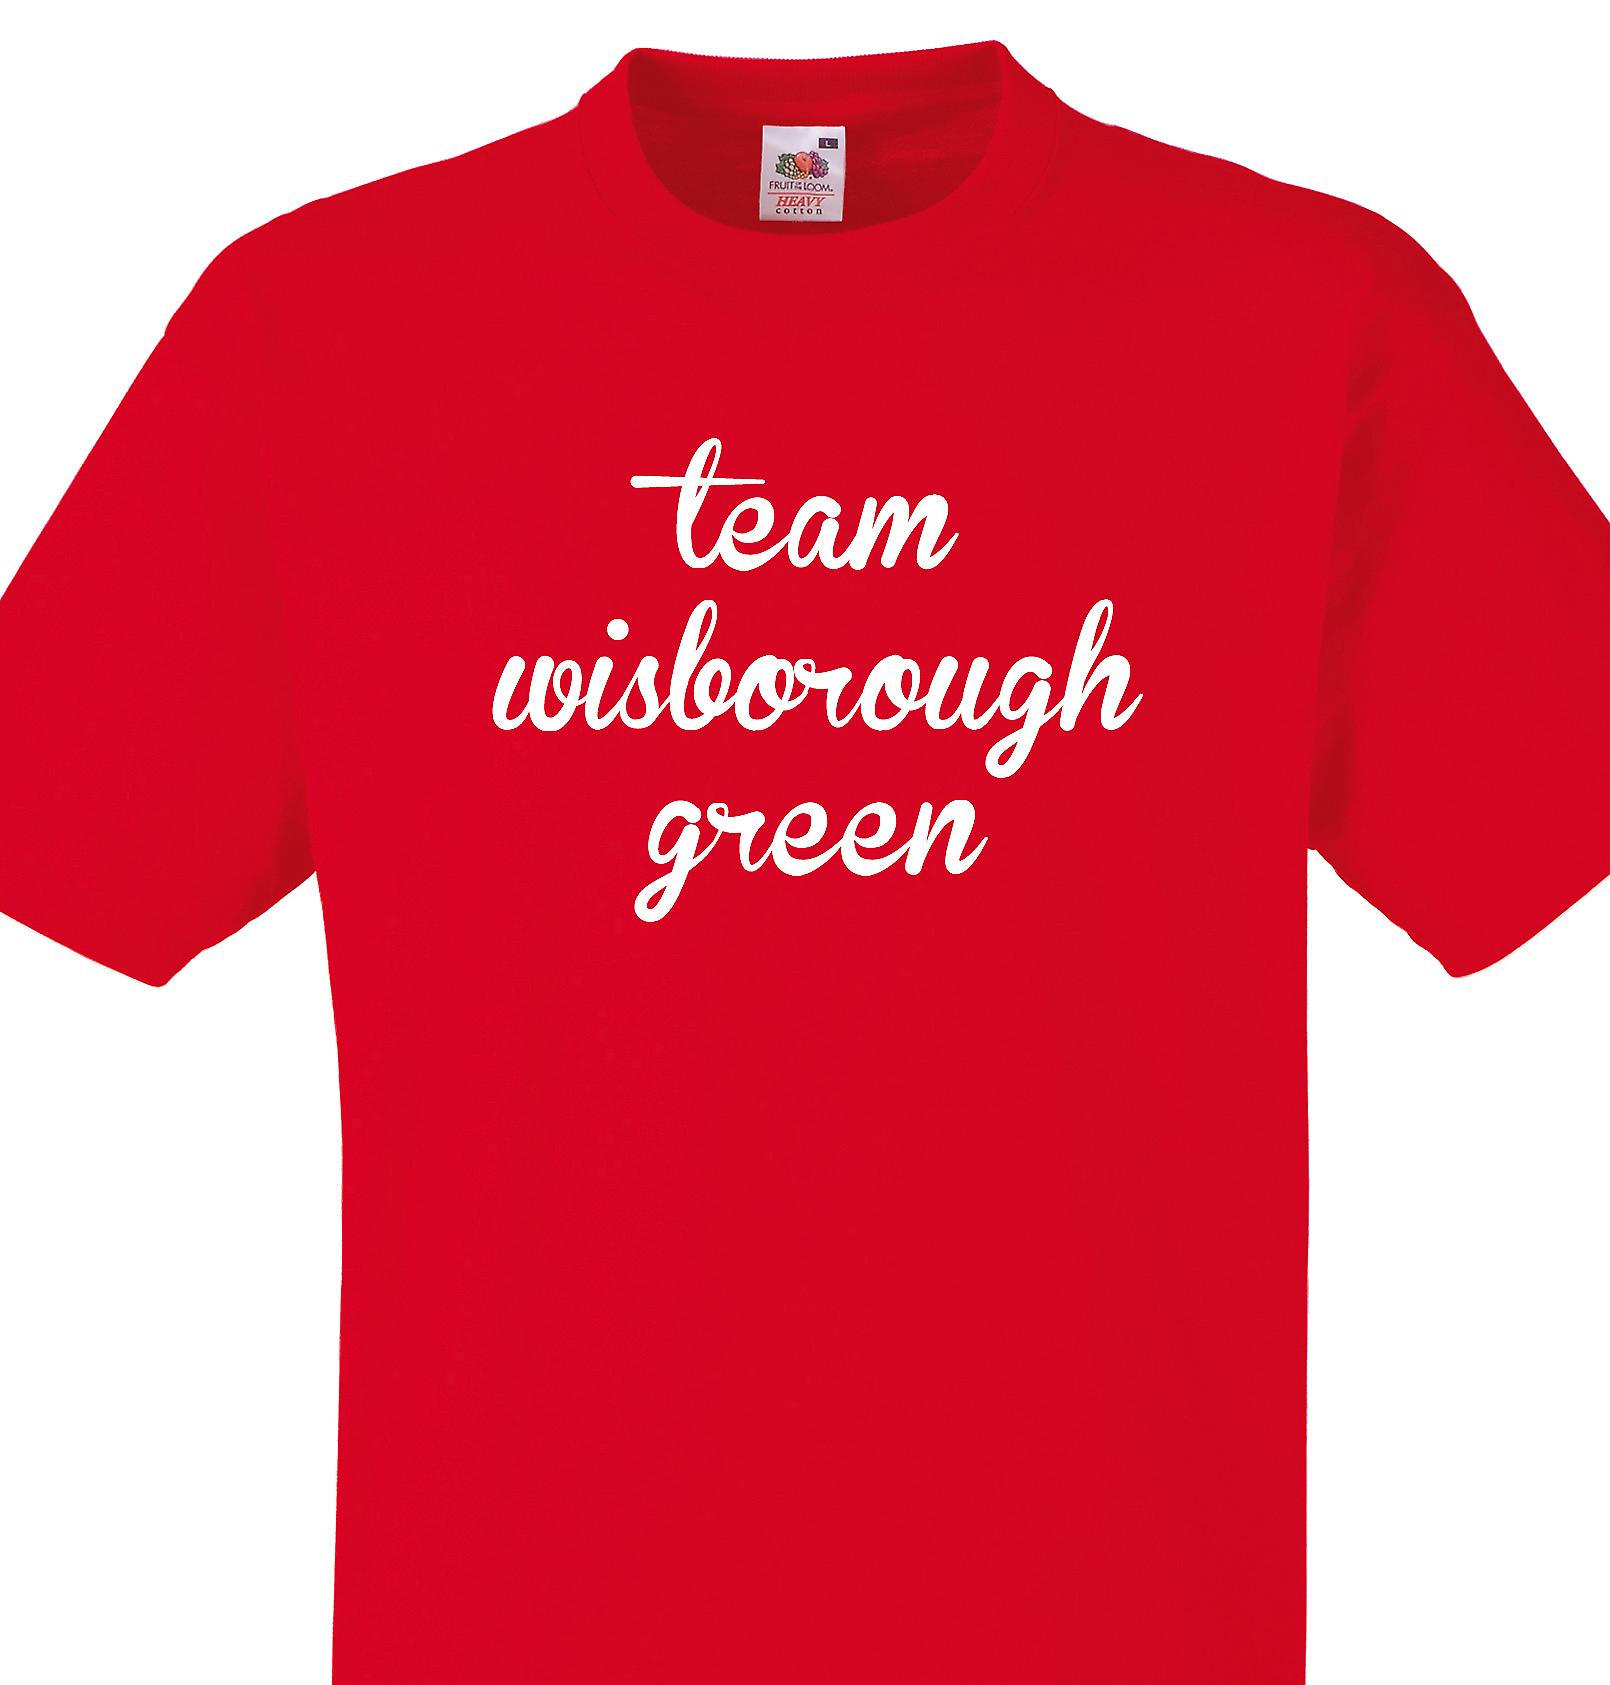 Team Wisborough green Red T shirt